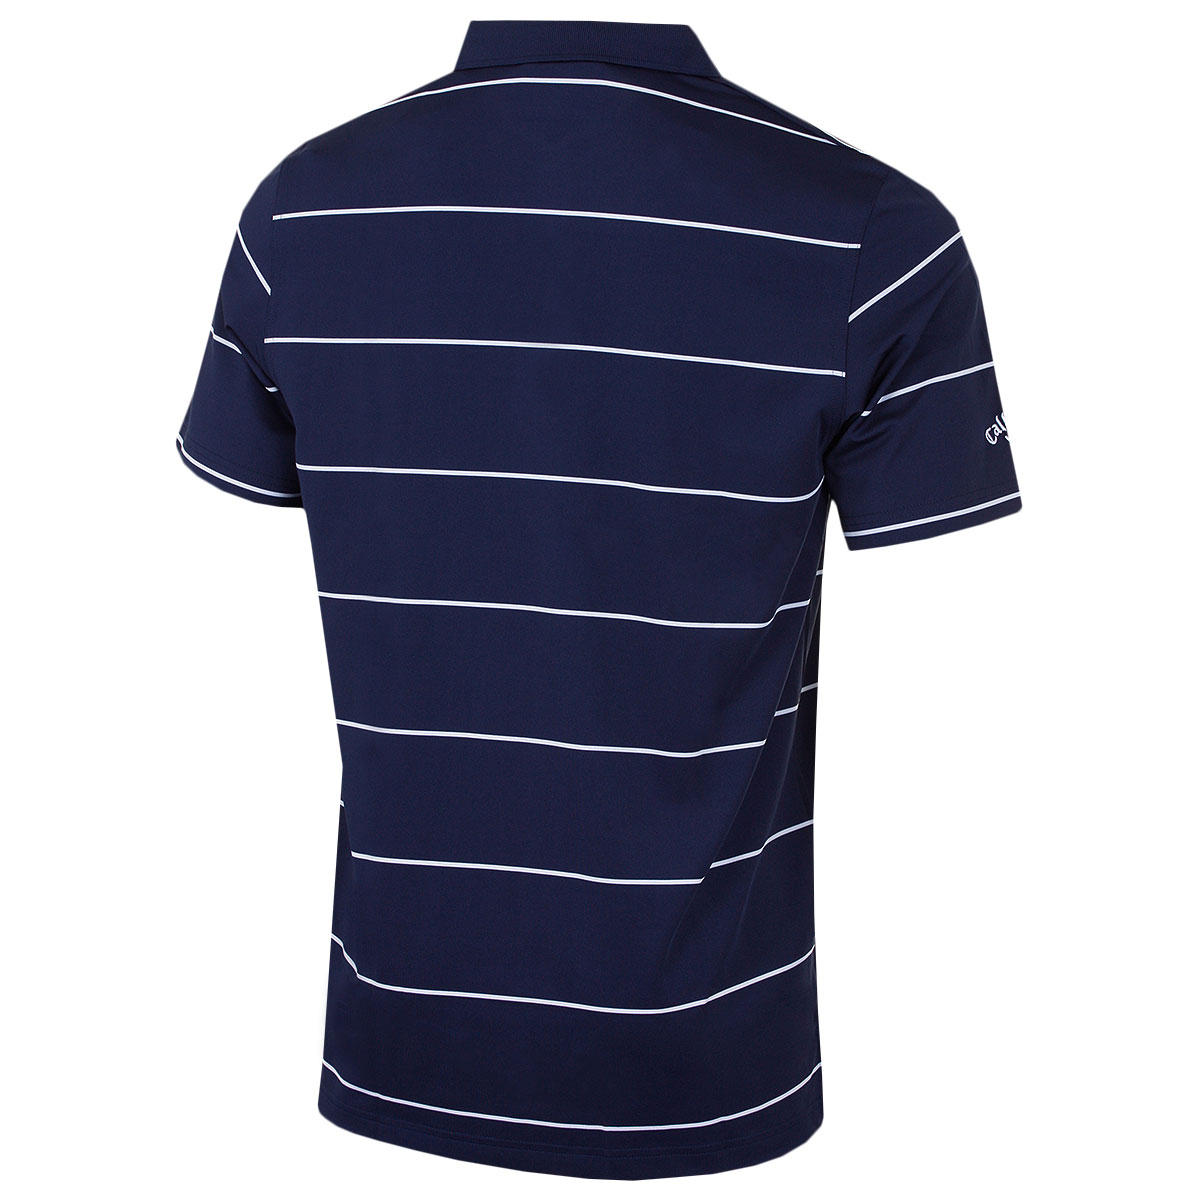 Callaway-Golf-Mens-Chev-Auto-Stripe-Polo-Shirt-Opti-Dri-Short-Sleeve-53-OFF-RRP thumbnail 17